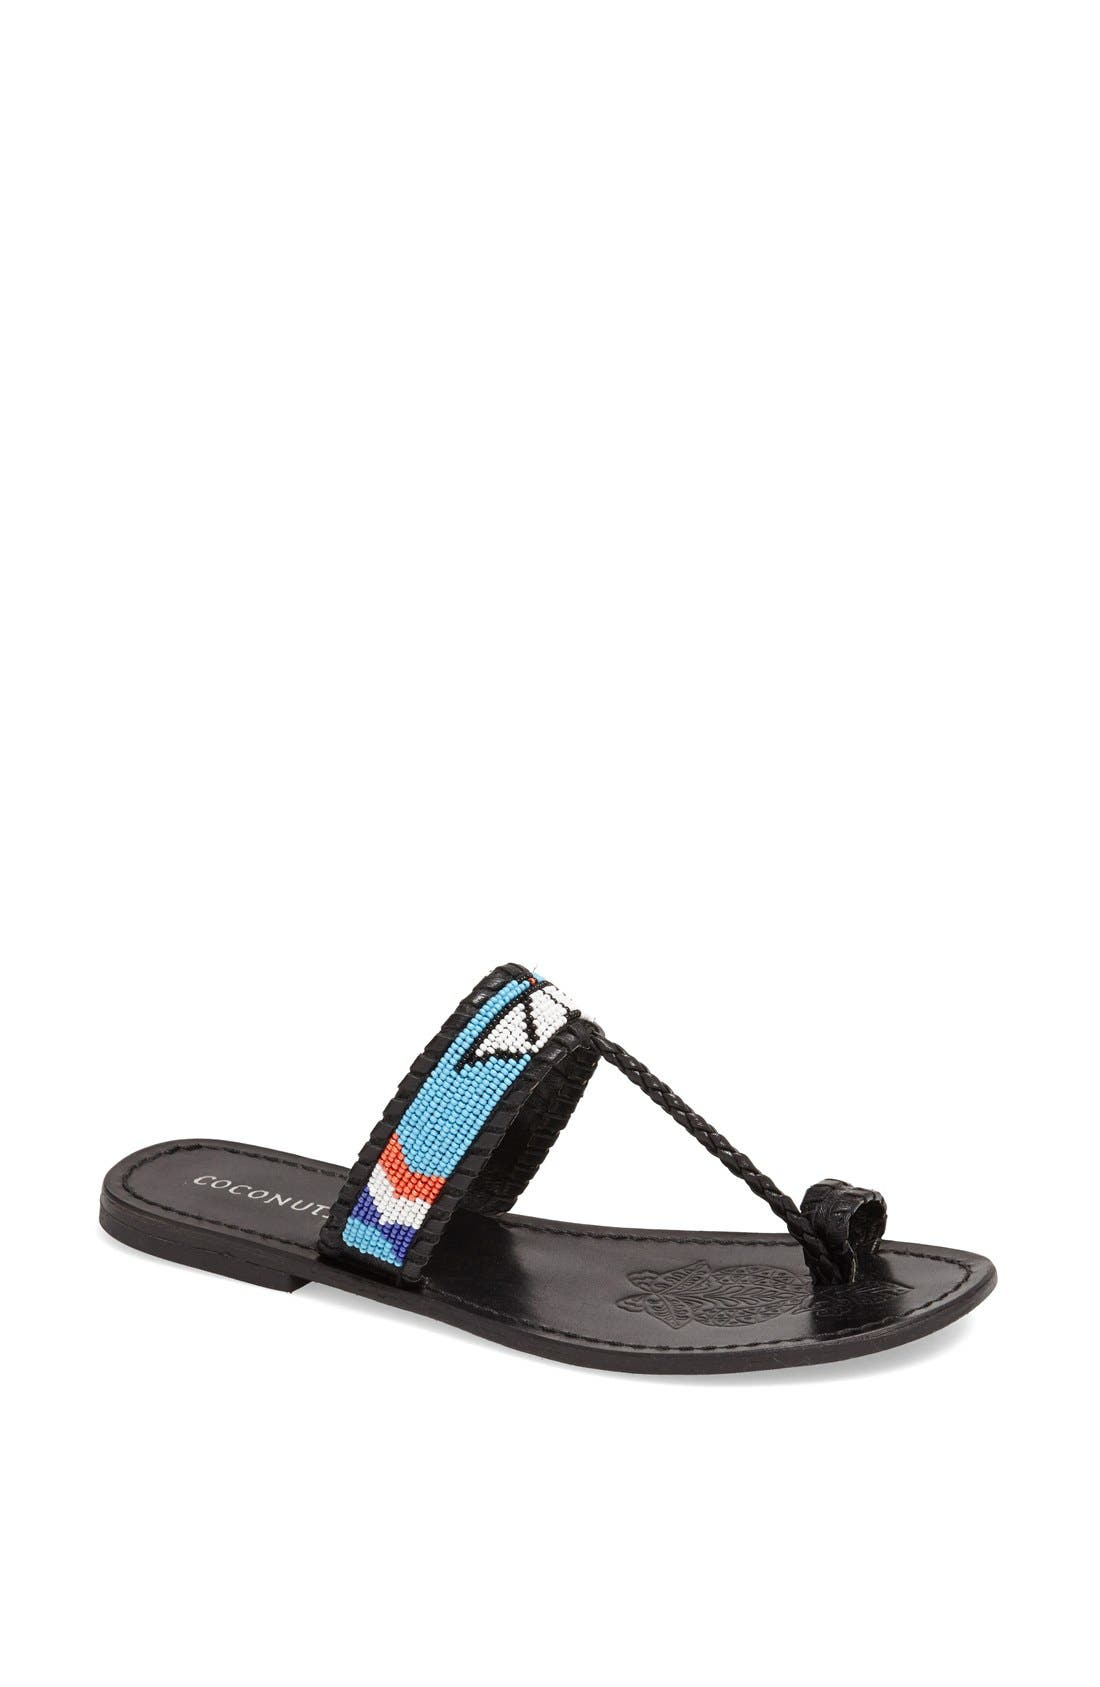 Main Image - Coconuts by Matisse Beaded Sandal